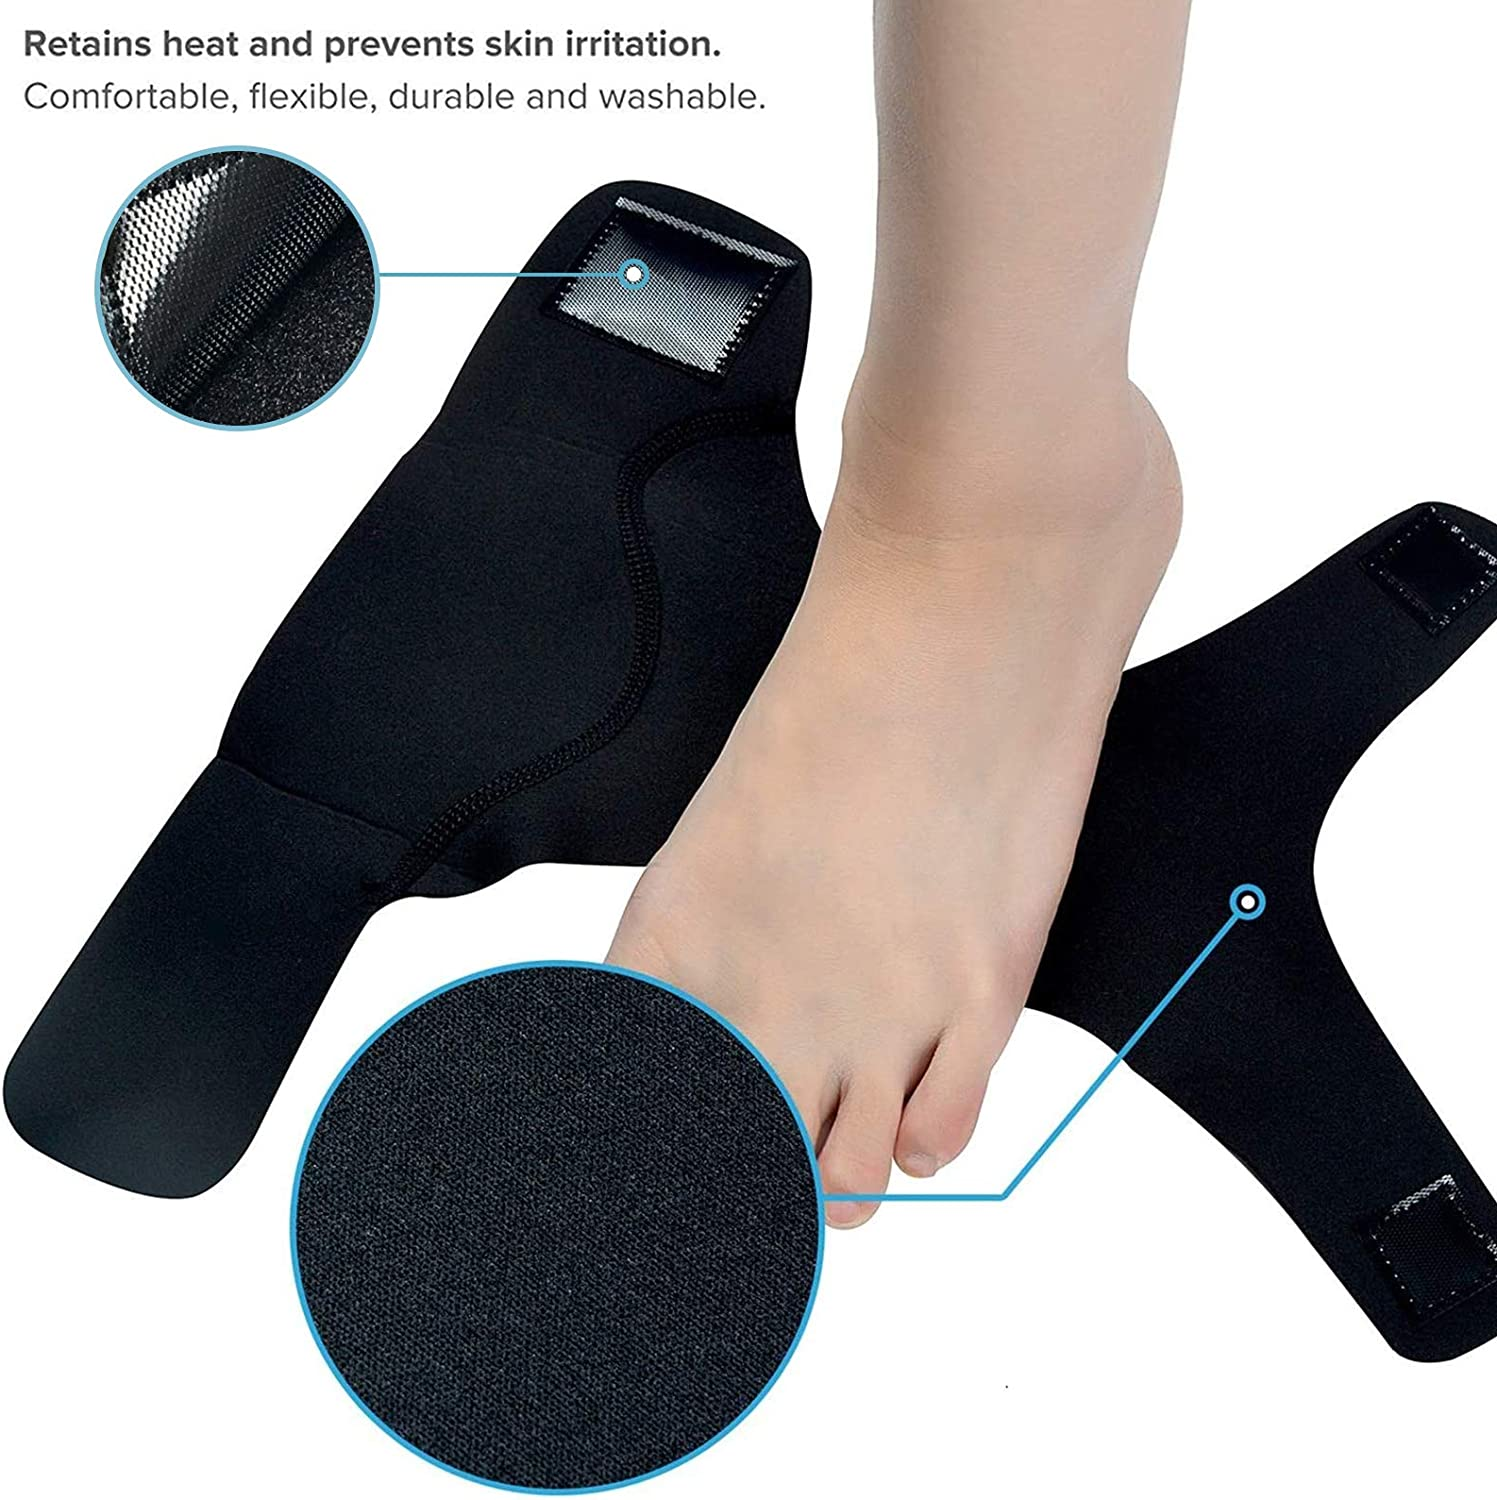 Ankle Brace Medium Protective Gear Ankle Guards Sodeno Ankle Guards Professional Foot Sleeve Pair Prevent Re-Injury 1 Pair Boots Circulation